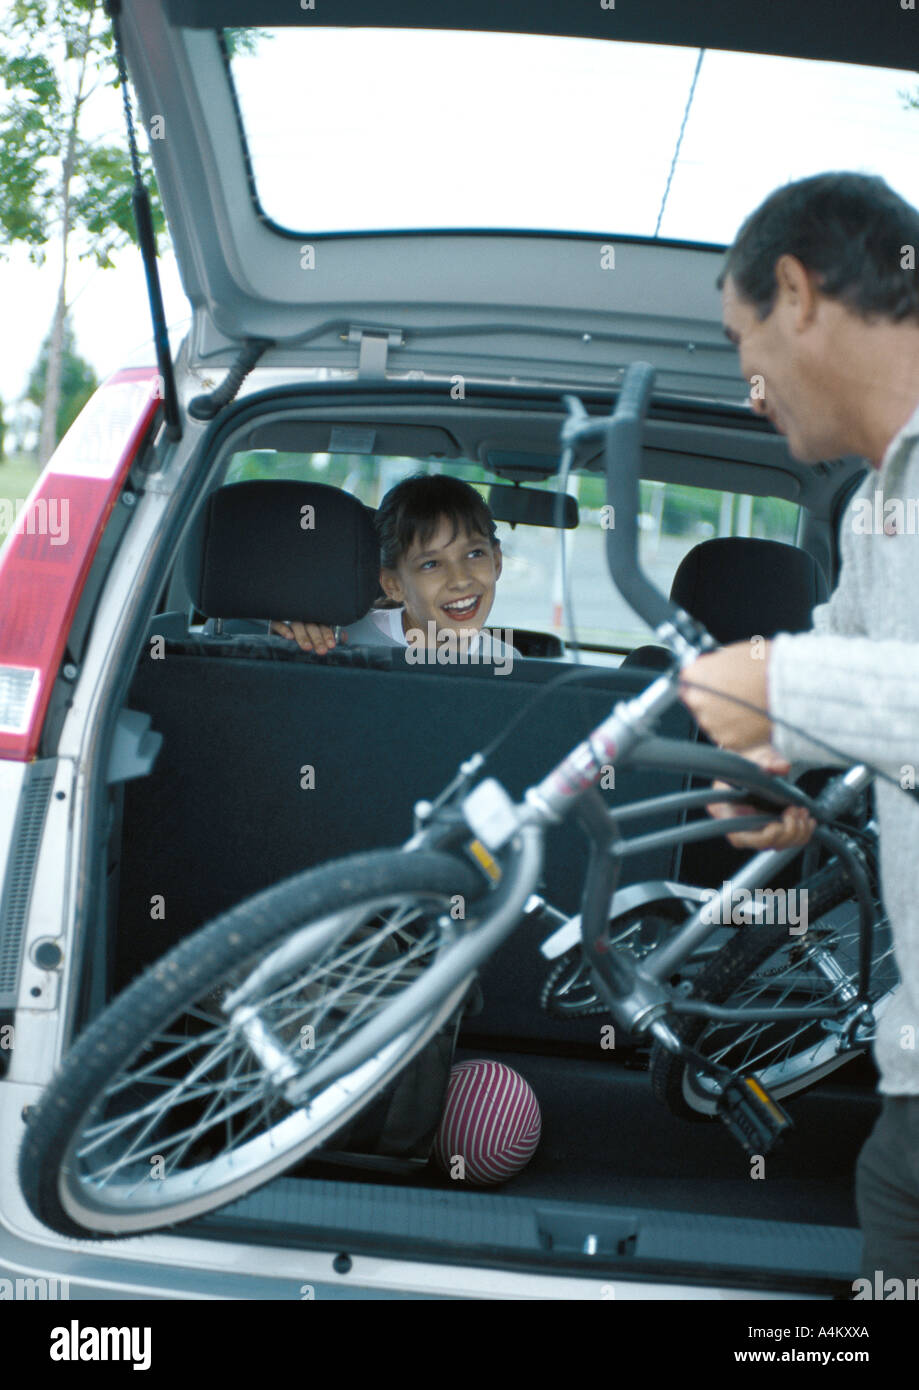 Man putting bicycle into trunk of car, girl in car turning around smiling at man - Stock Image